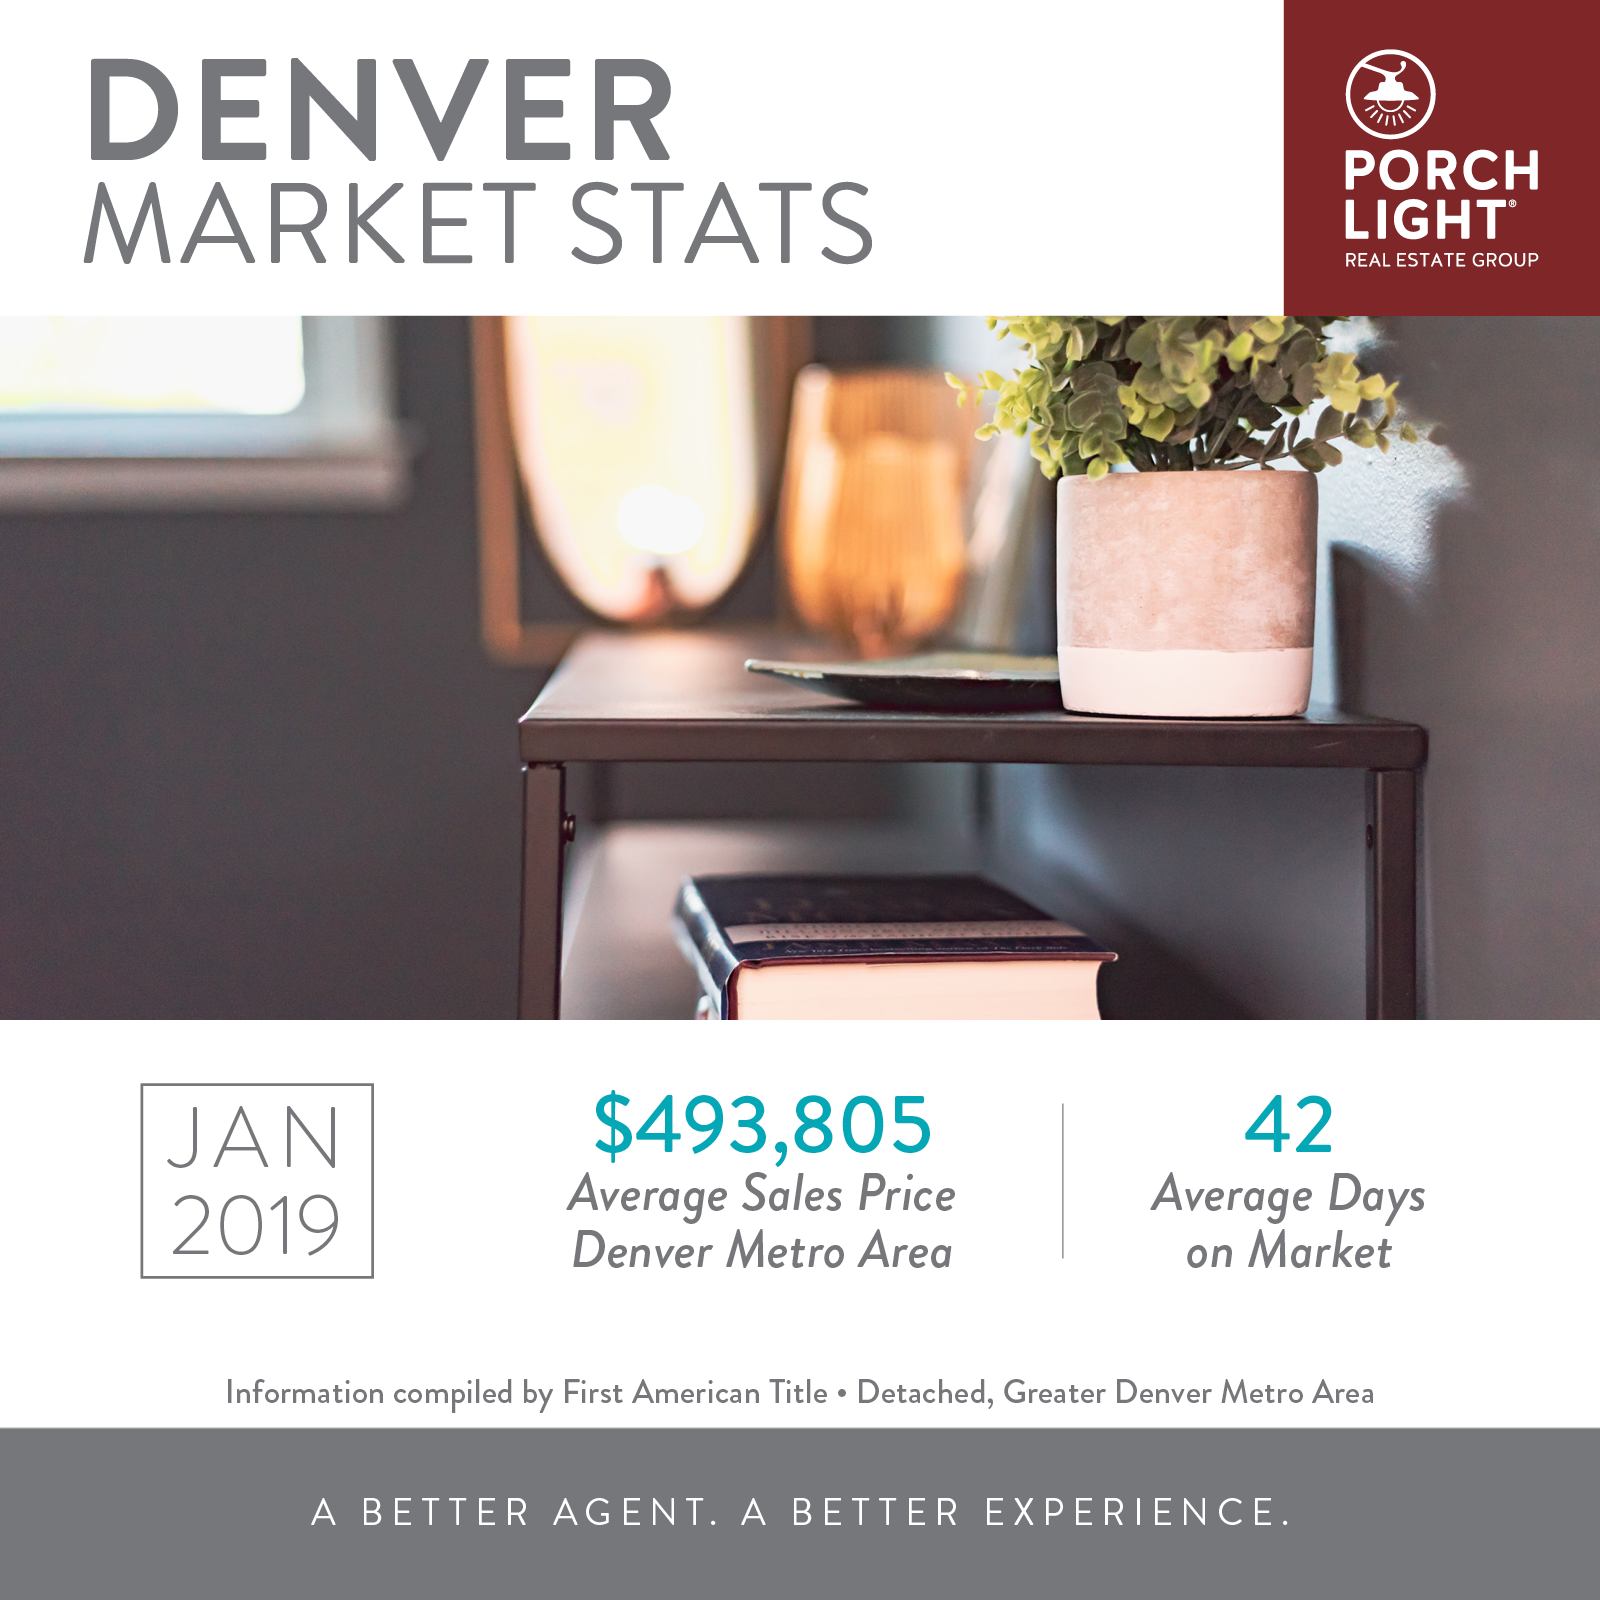 January 2019 Denver Market Stats